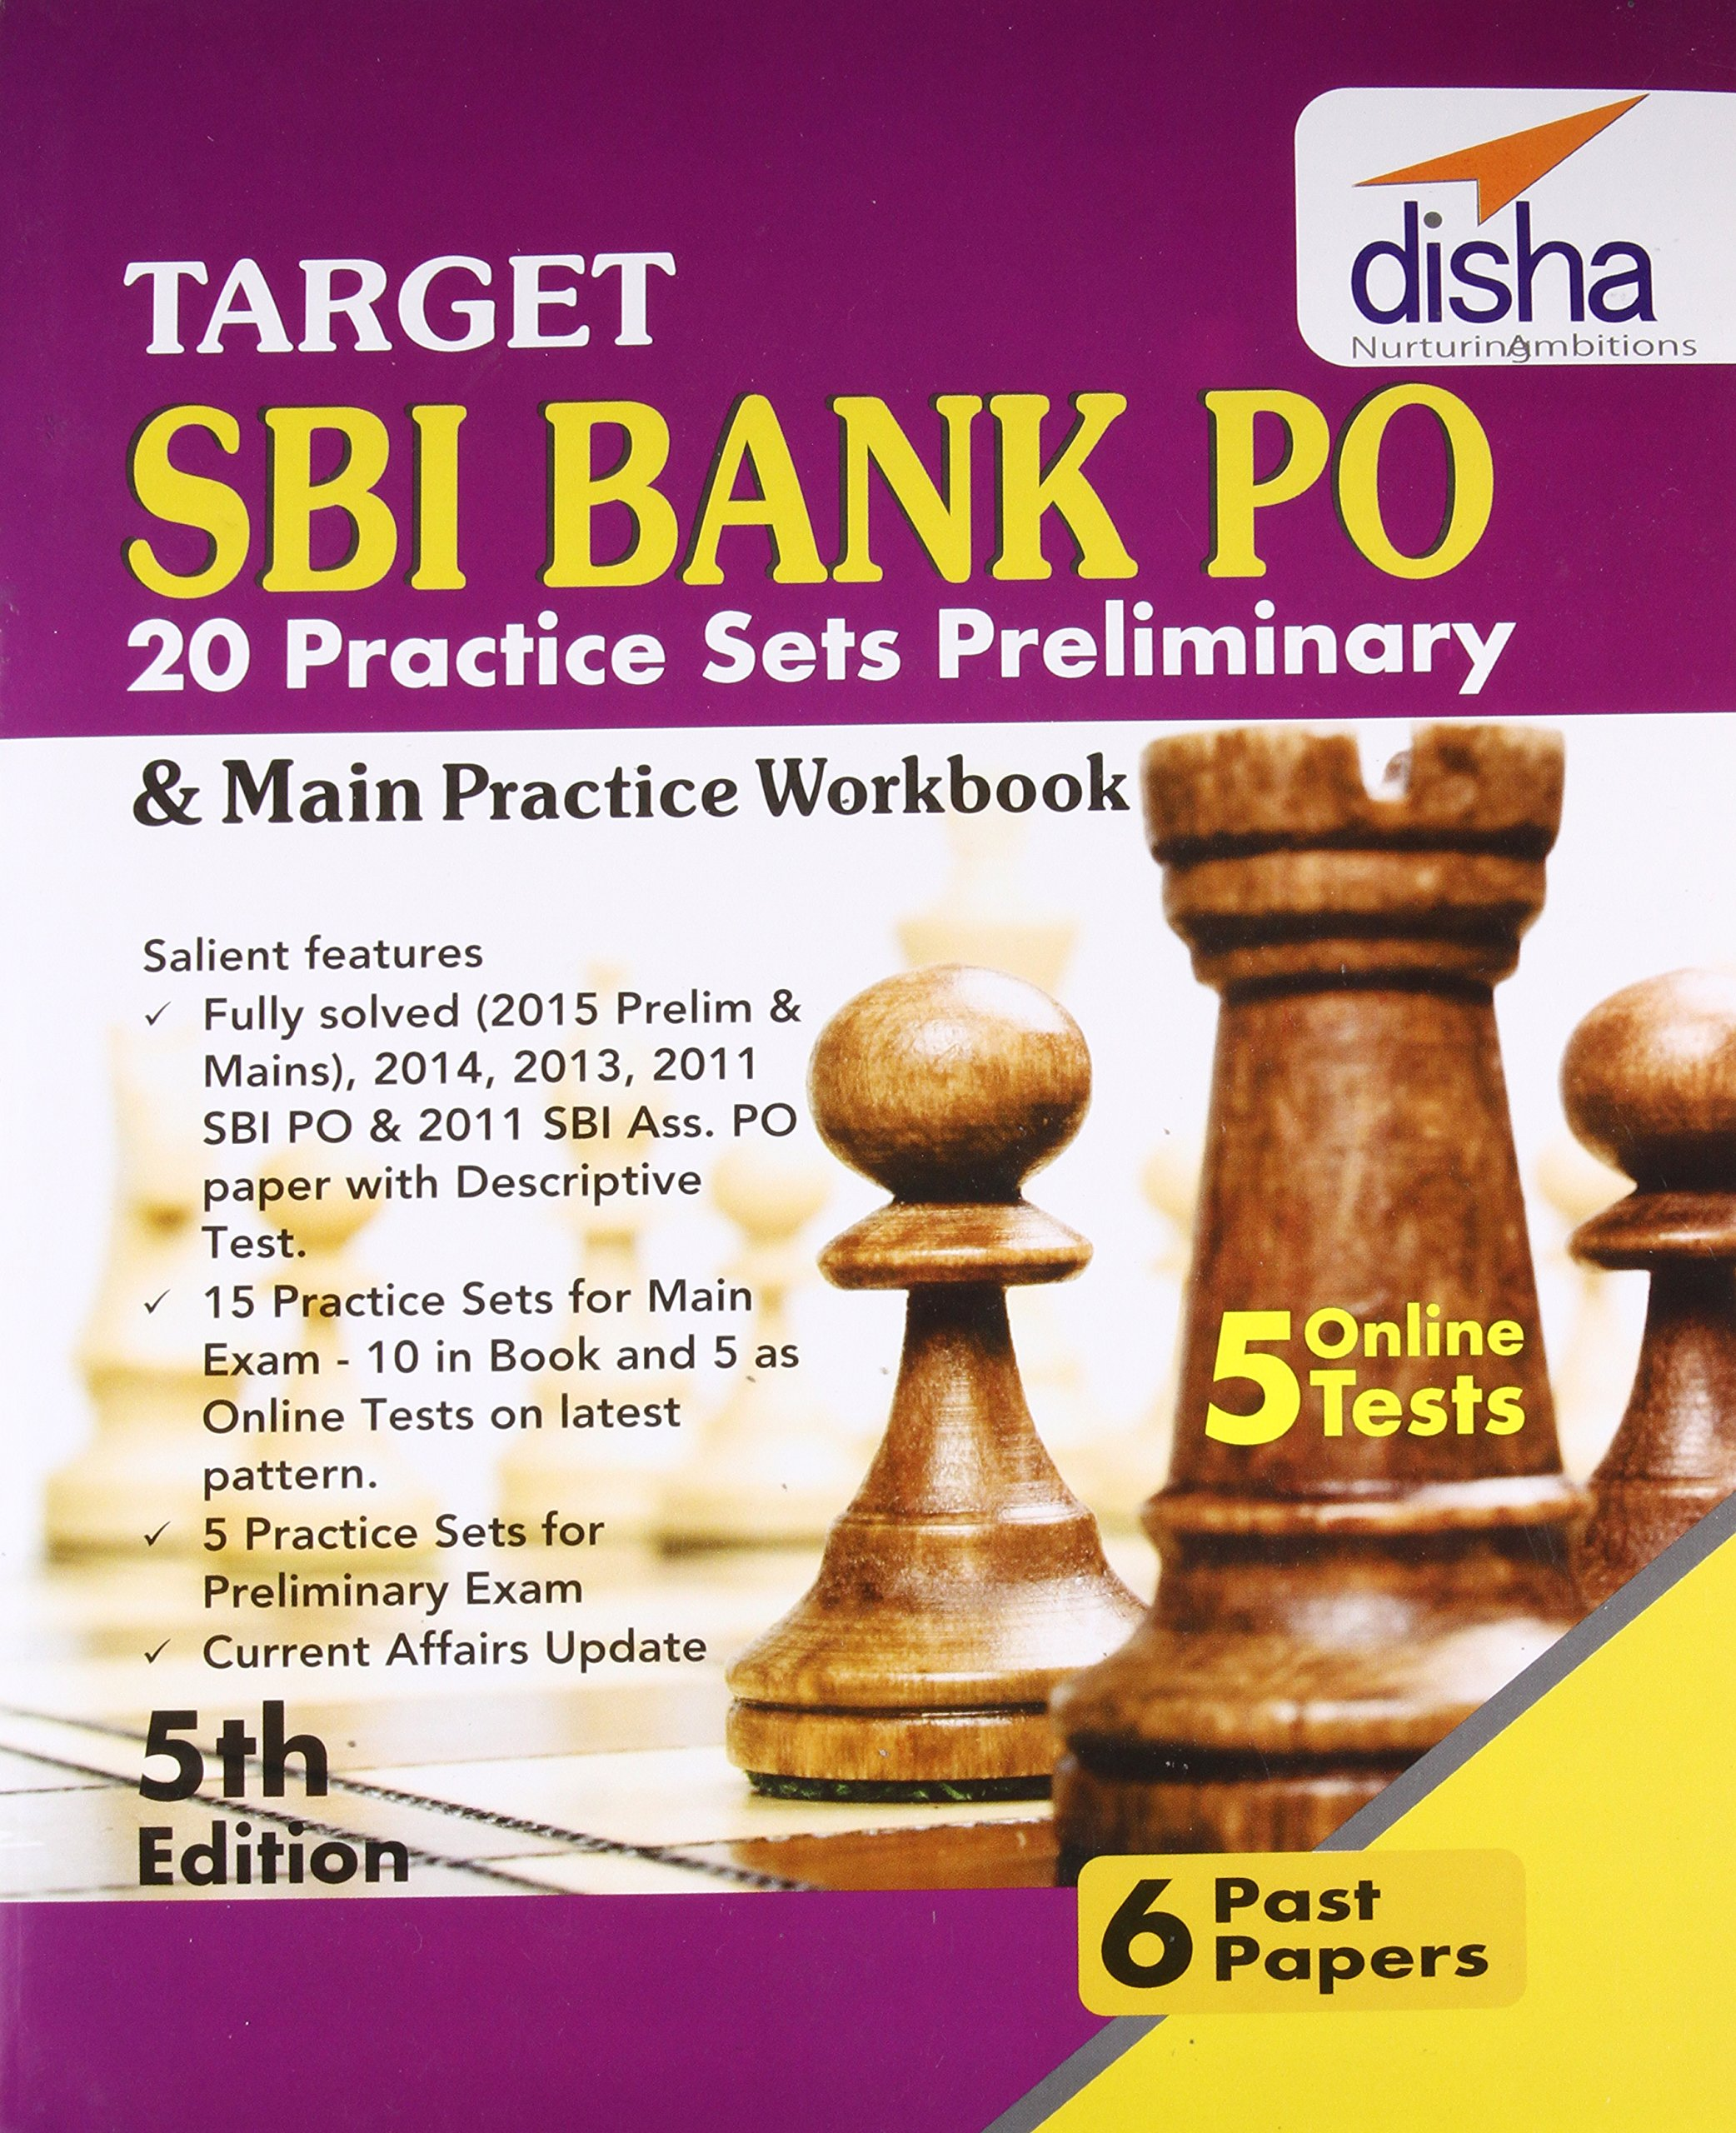 SBI PO      Exam Pattern Changed  New Process Explained Here  Very Important essay for SBI PO       SSC CGL Tier   Descriptive  Part